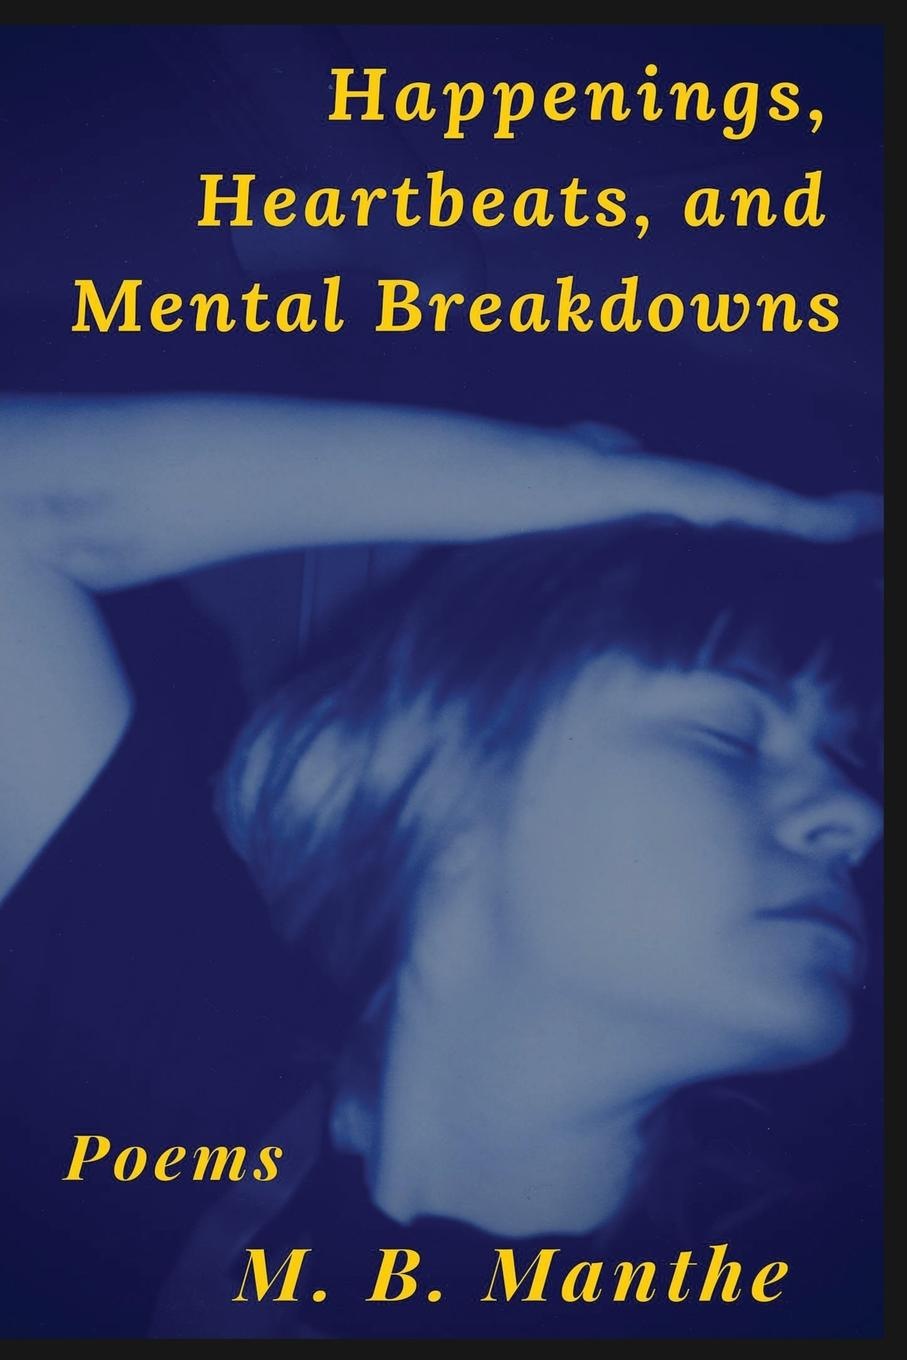 M. B. Manthe Happenings, Heartbeats, and Mental Breakdowns. Poems